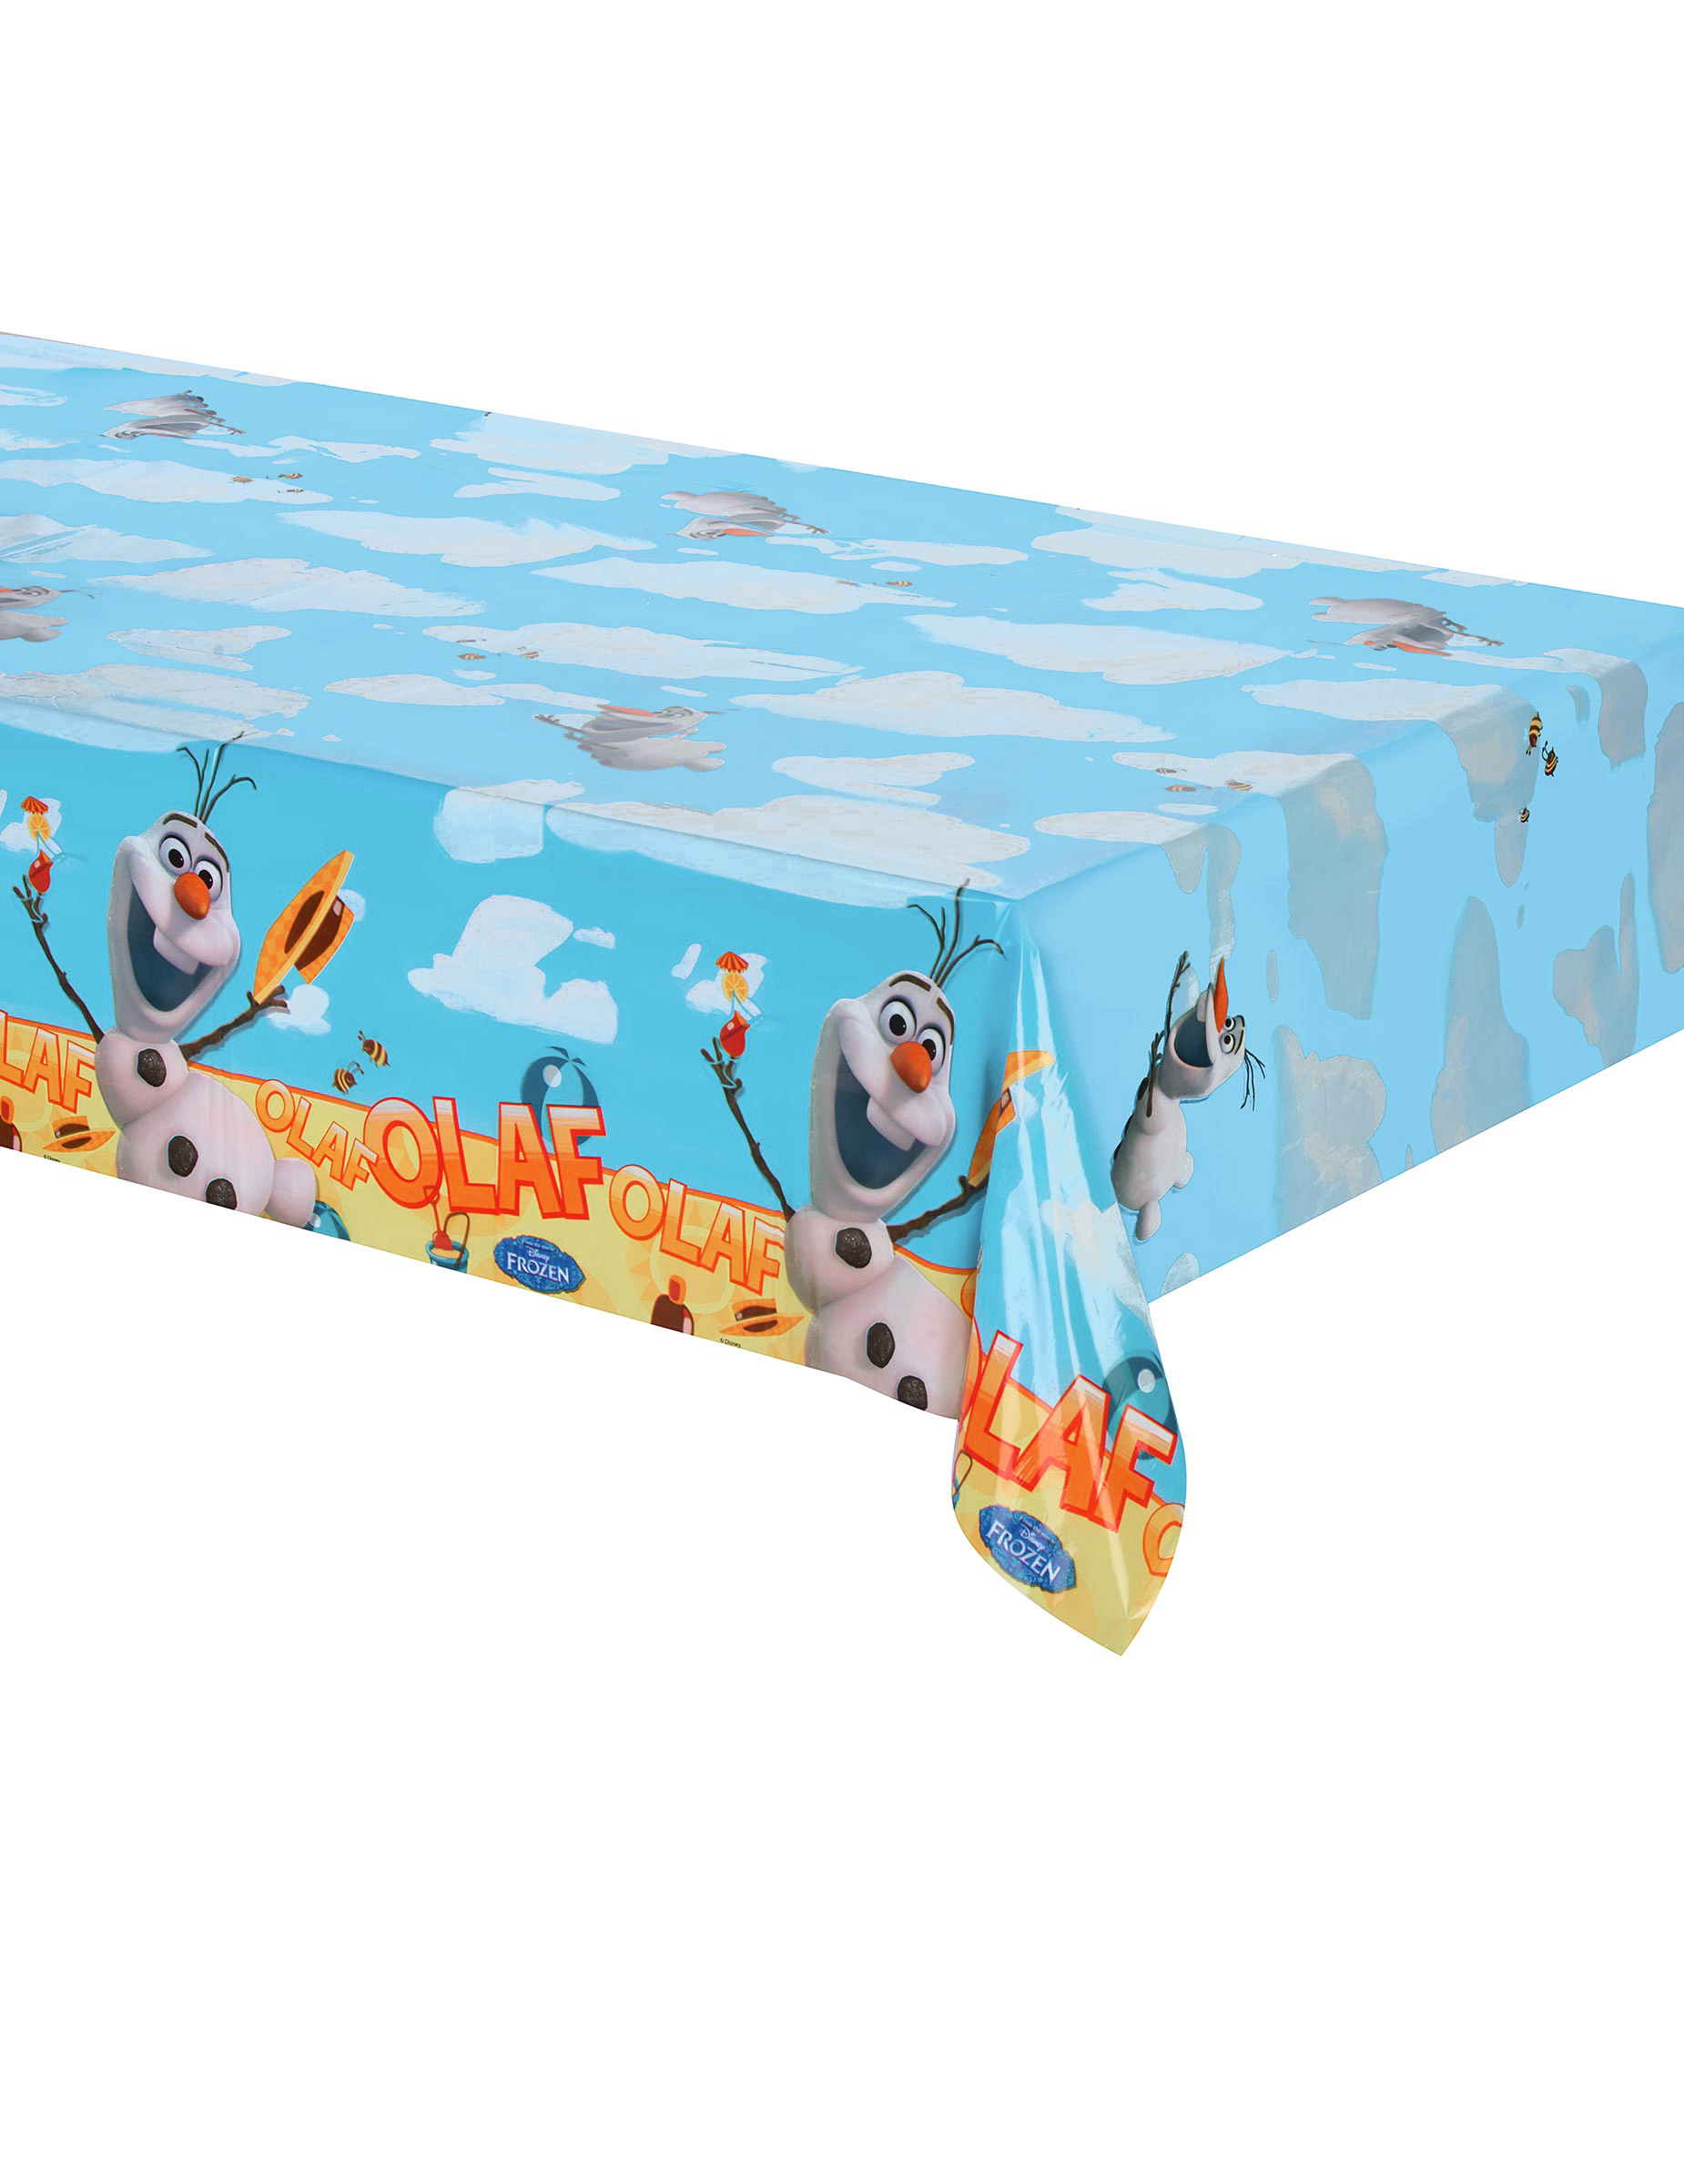 disney frozen tischdecke olaf kinderparty deko bunt. Black Bedroom Furniture Sets. Home Design Ideas